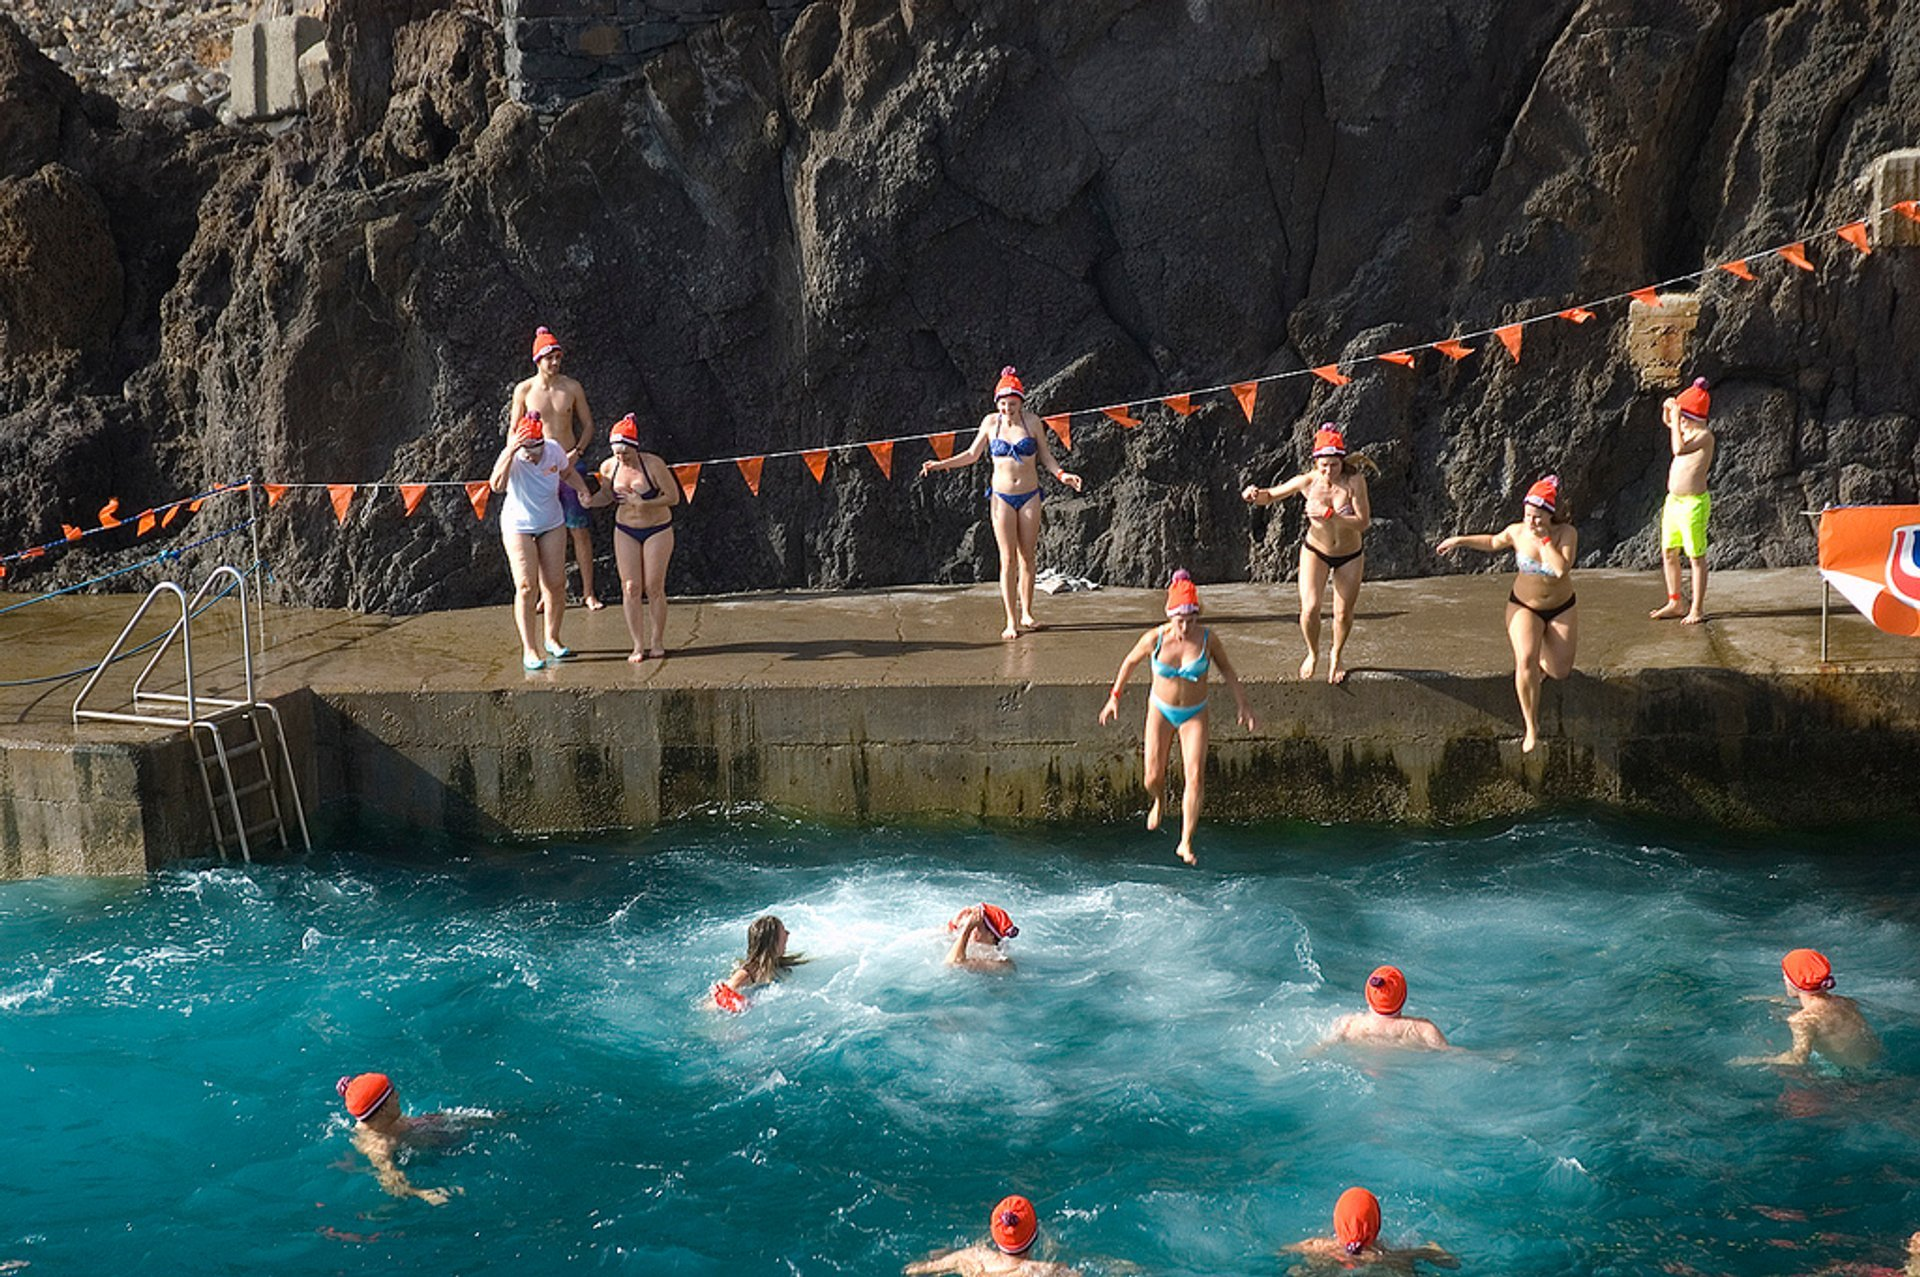 Madeira Plunge in Madeira 2020 - Best Time